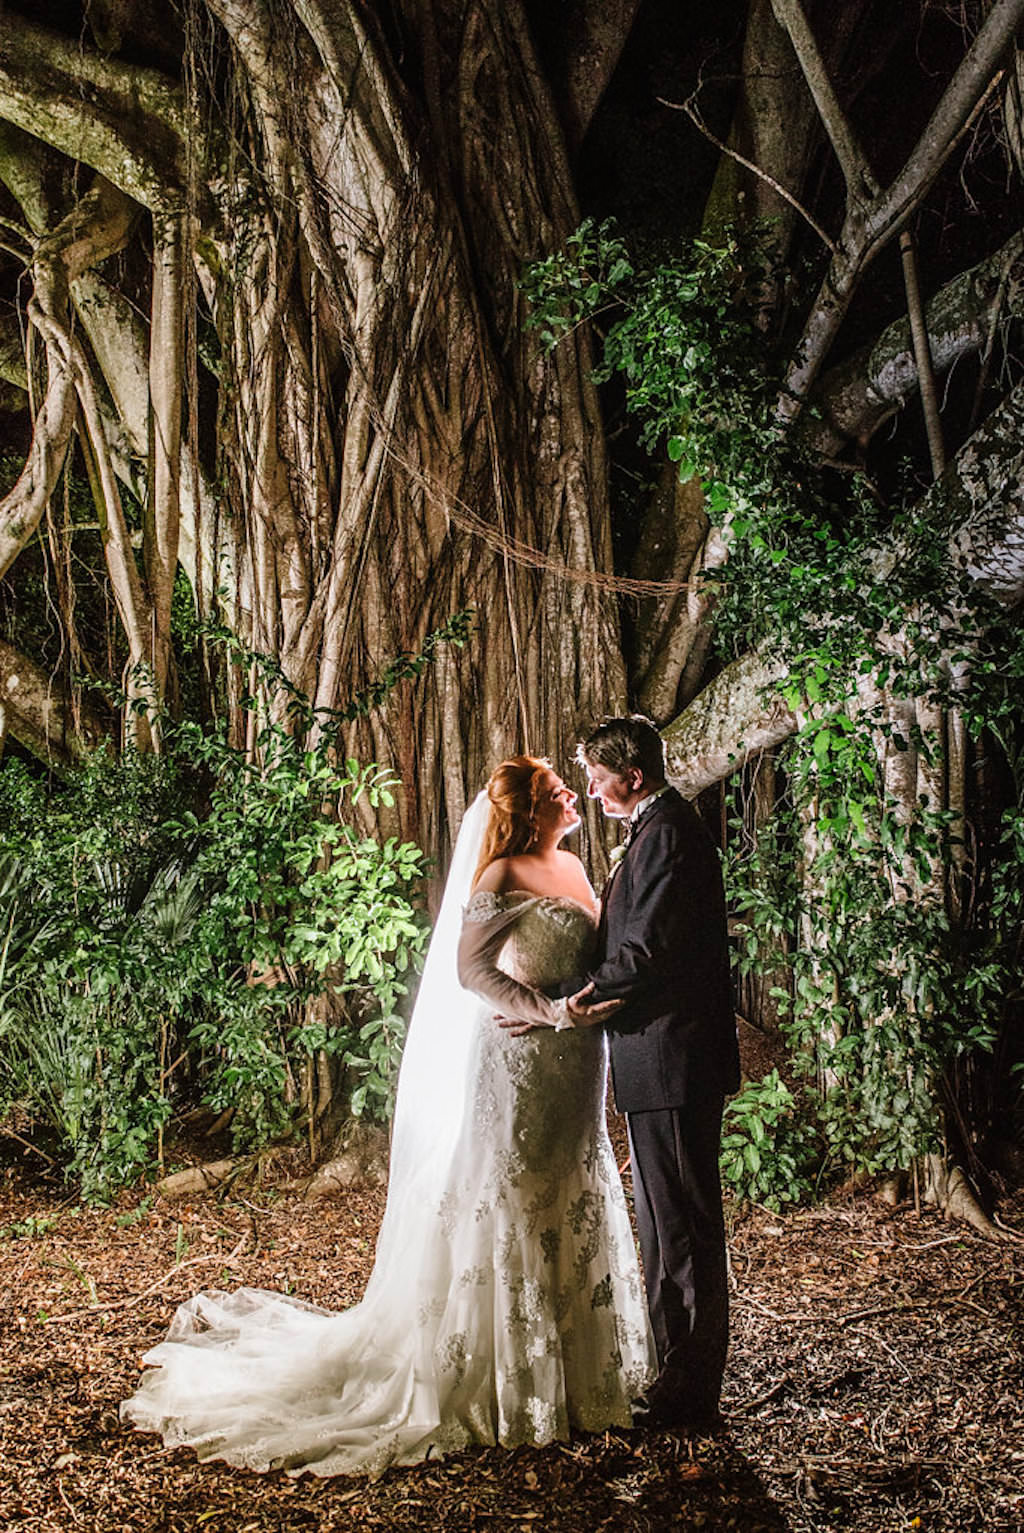 Outdoor Nighttime Wedding Portrait, Bride in Sweetheart Trumpet Lace Long Sleeve Essence of Australia Dress, Groom in Midnight Blue Tuxedo with Boutonniere in Tropical Garden with Banyan Tree